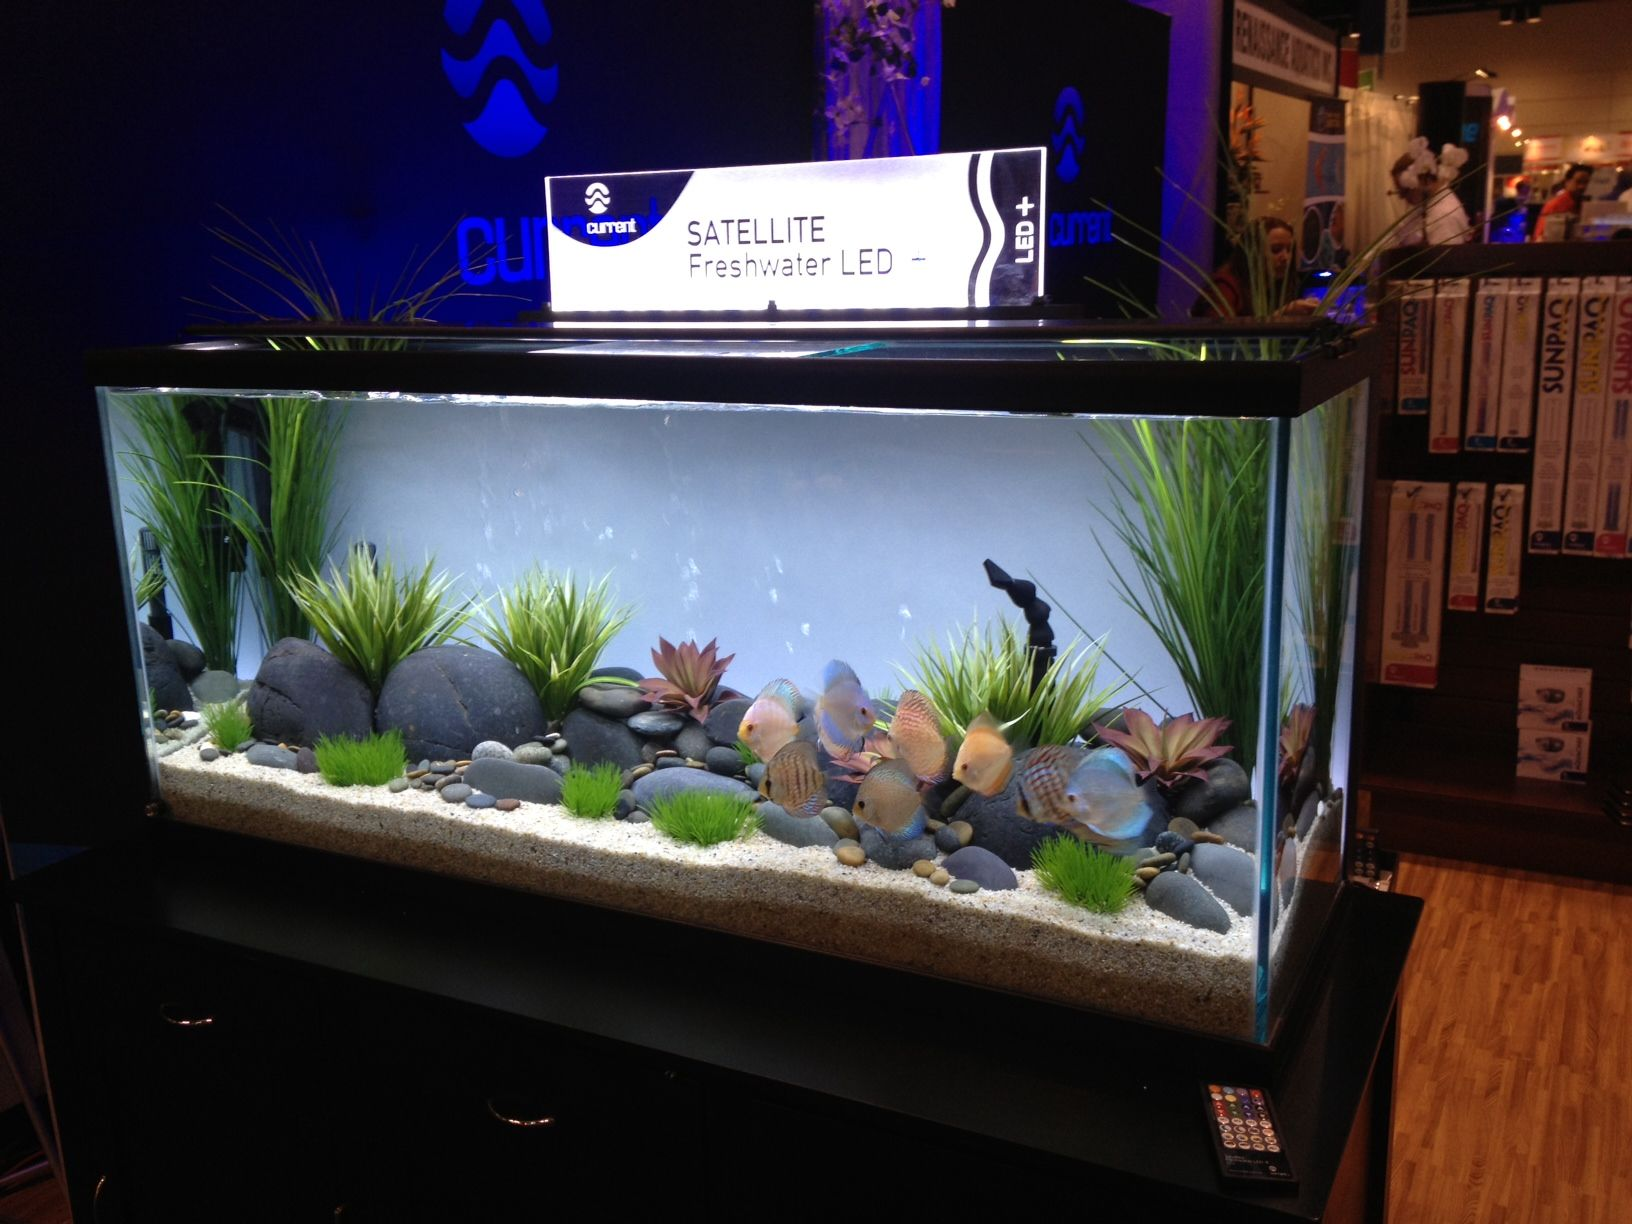 Freshwater aquarium fish orlando - A Discus Aquarium Lit With The Satellite Led Freshwater Aquarium Light With Built In Wireless